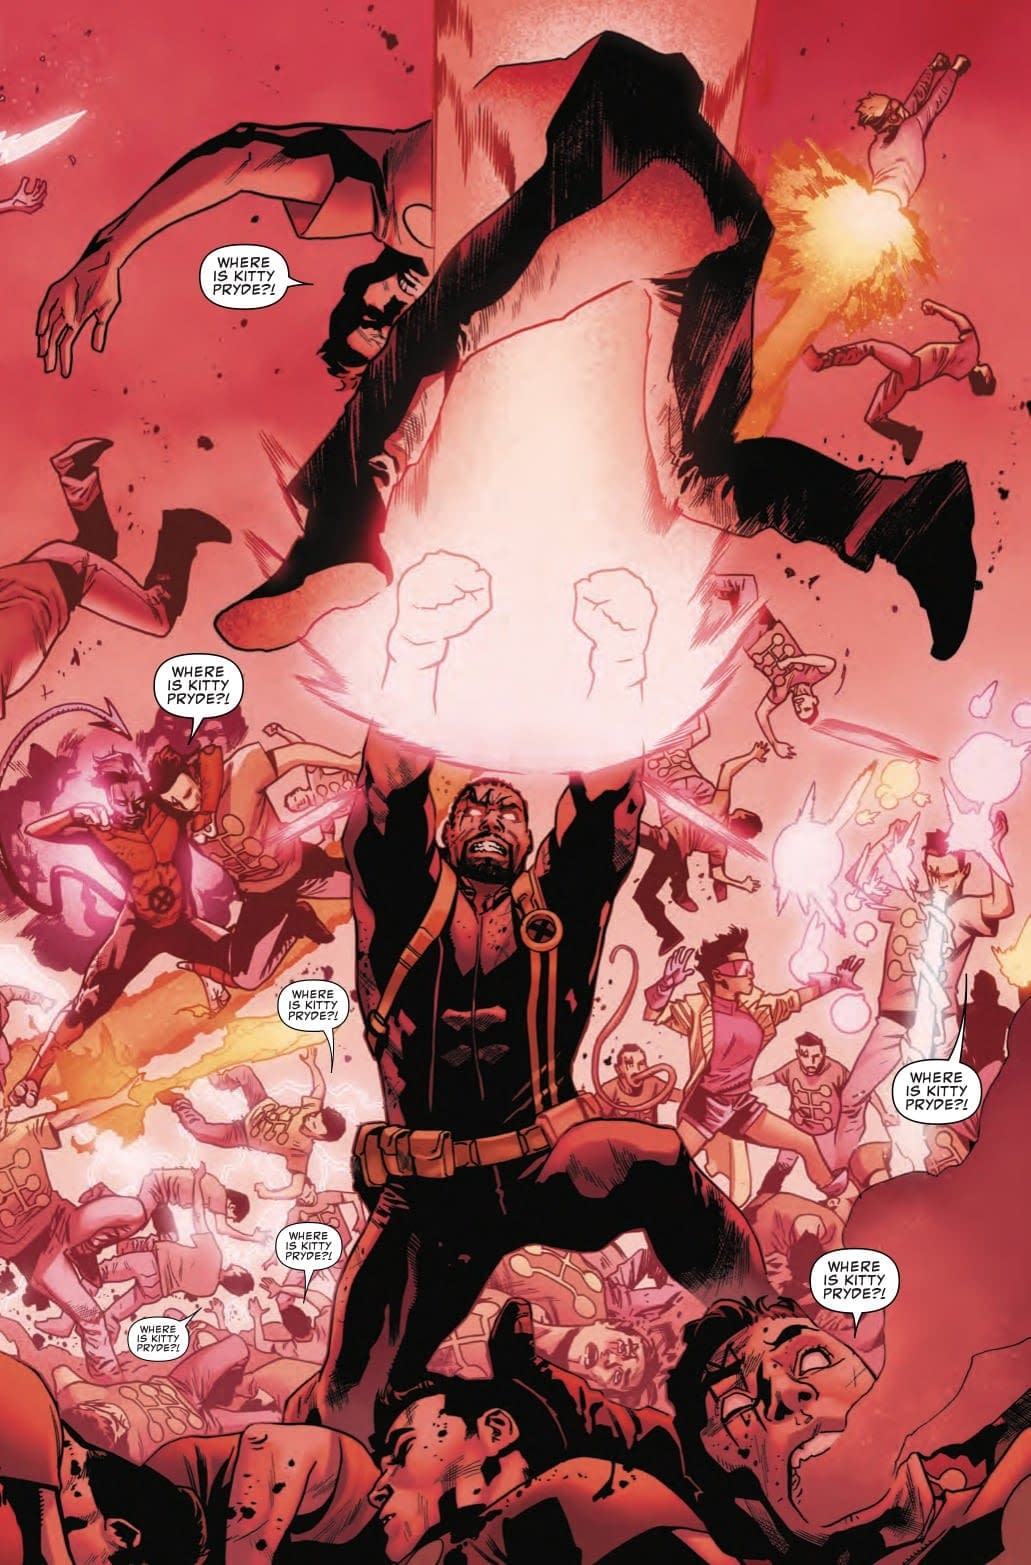 So That's Where Kitty Pryde Went in Next Week's Uncanny X-Men #1